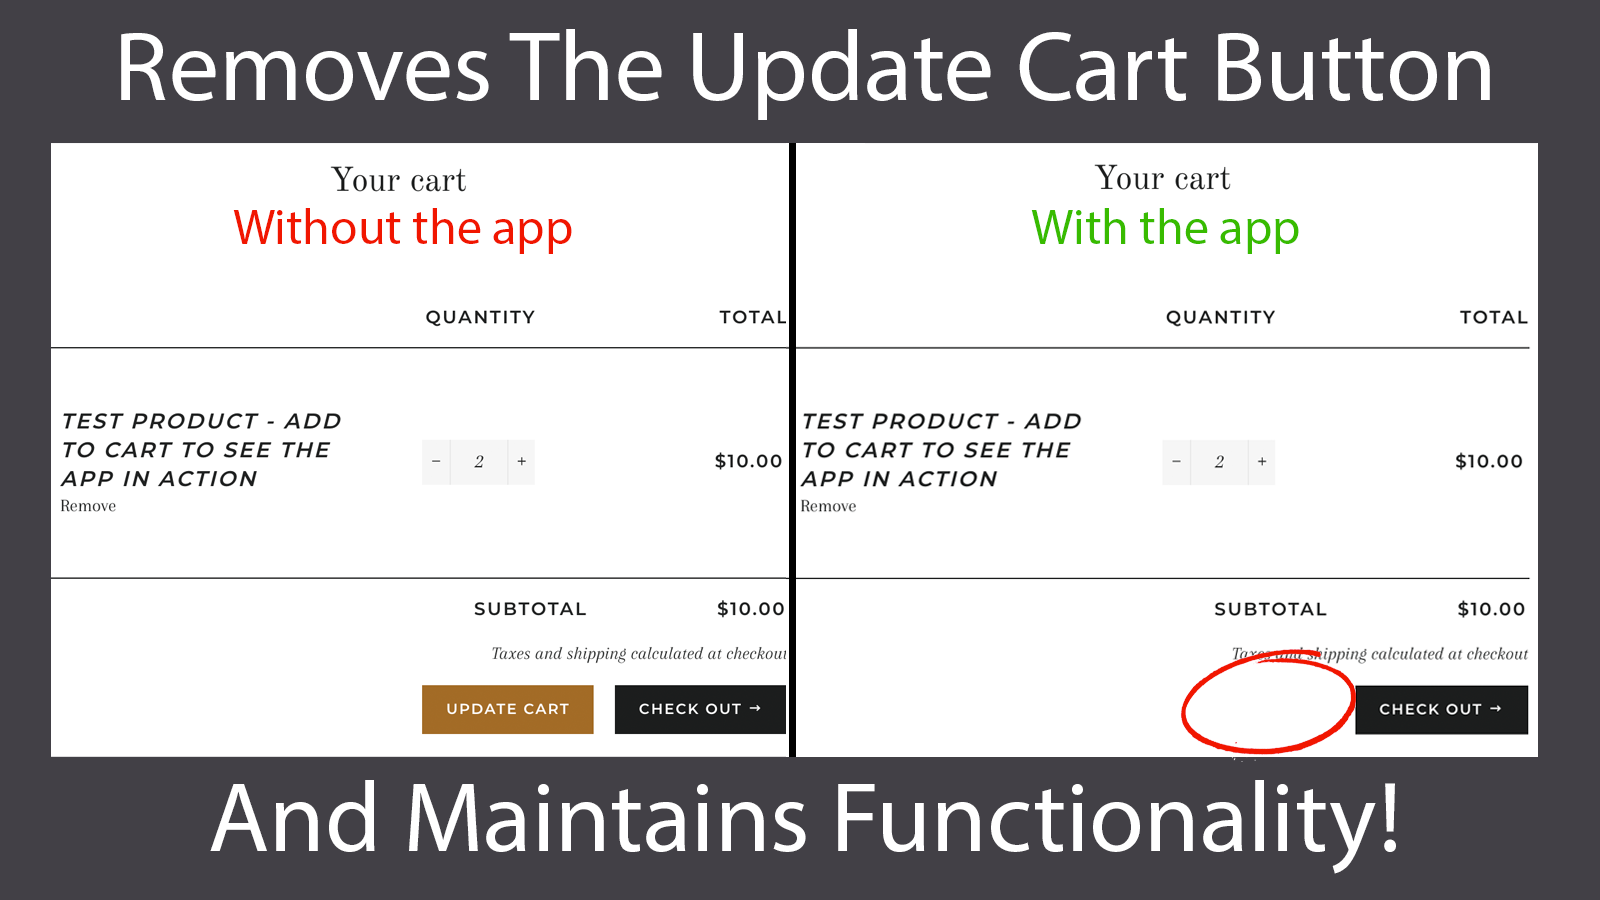 The app removes the 'Update Cart' button in the cart page